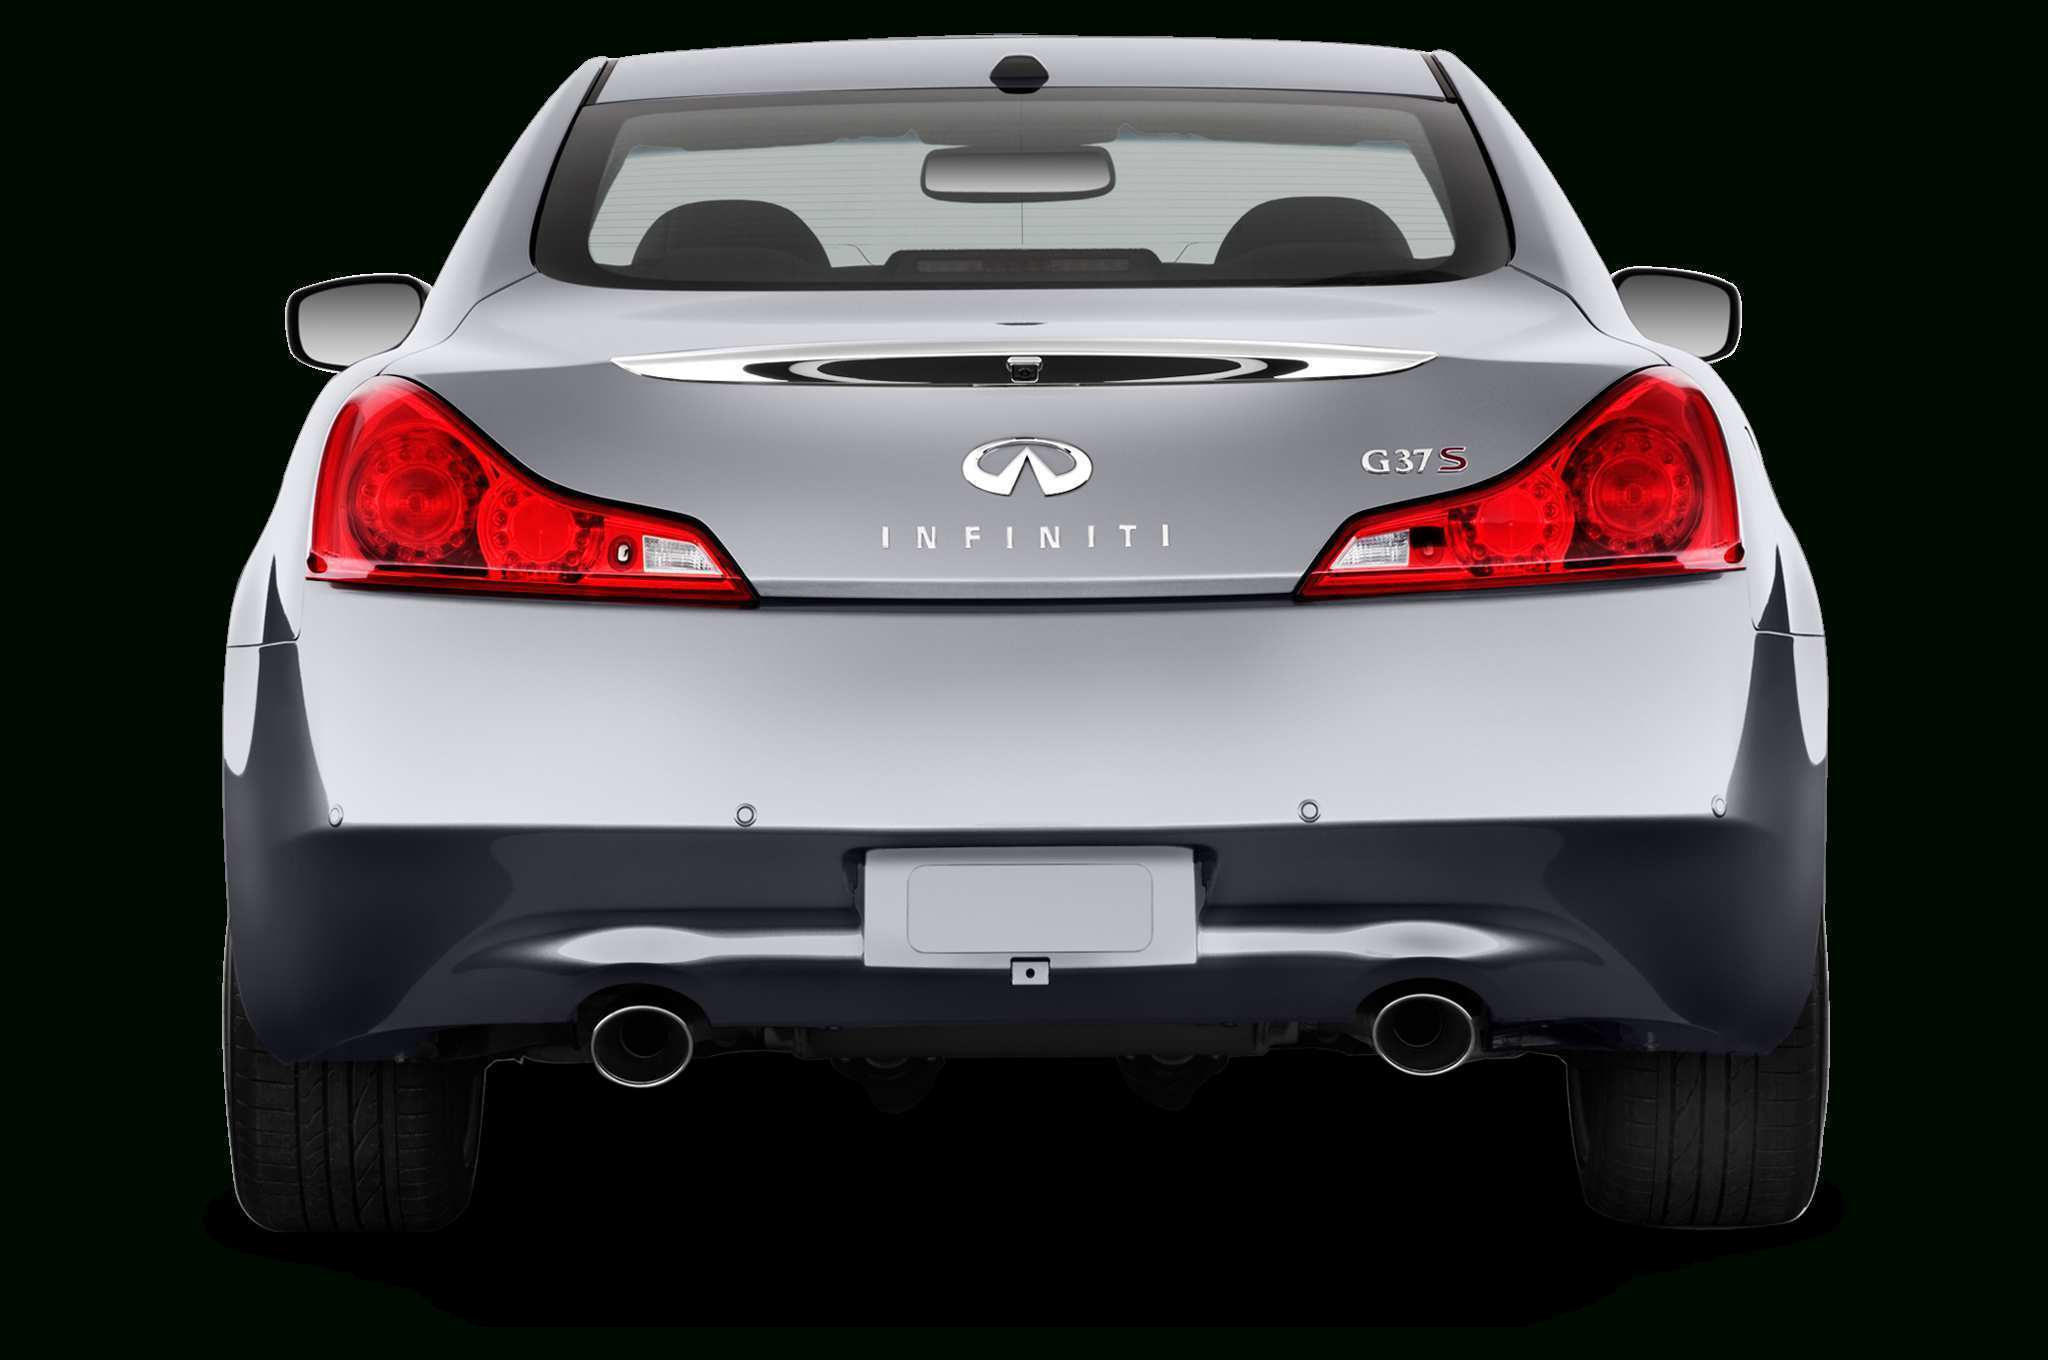 86 All New 2020 Infiniti G37 Exterior Redesign and Concept with 2020 Infiniti G37 Exterior